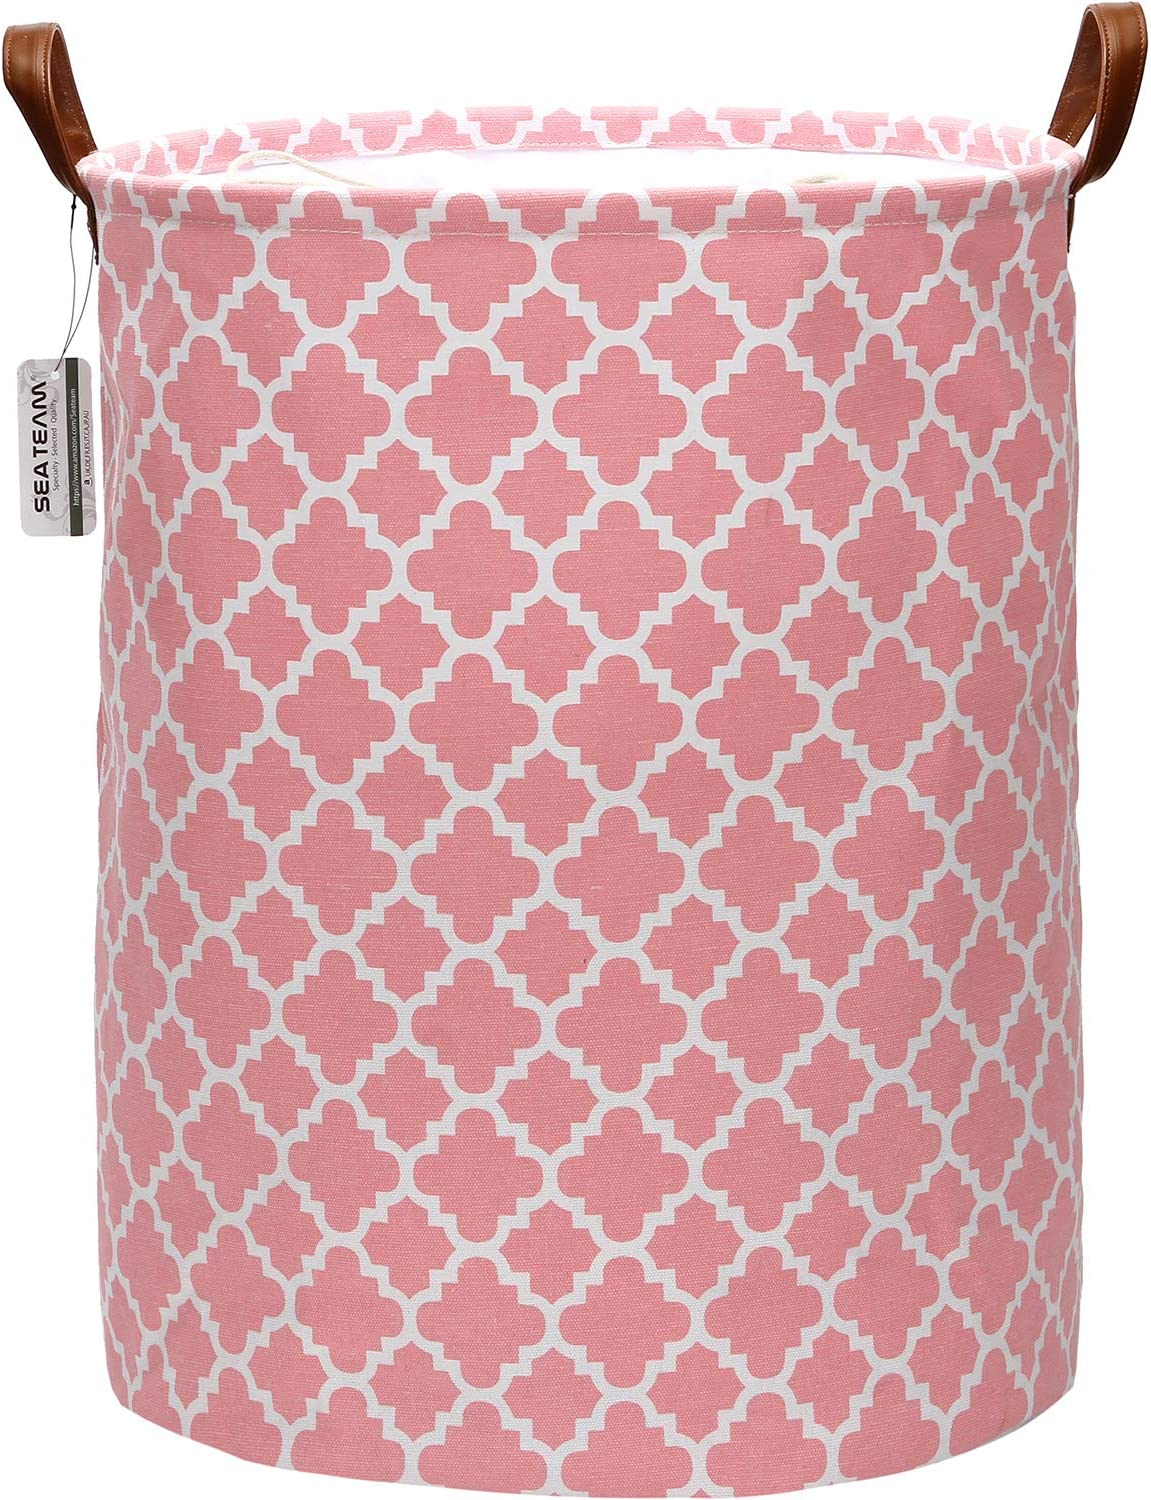 Sea Team Moroccan Lattice Pattern Laundry Hamper Canvas Fabric Laundry Basket Collapsible Storage Bin with PU Leather Handles and Drawstring Closure, 19.7 by 15.7 inches, Pink